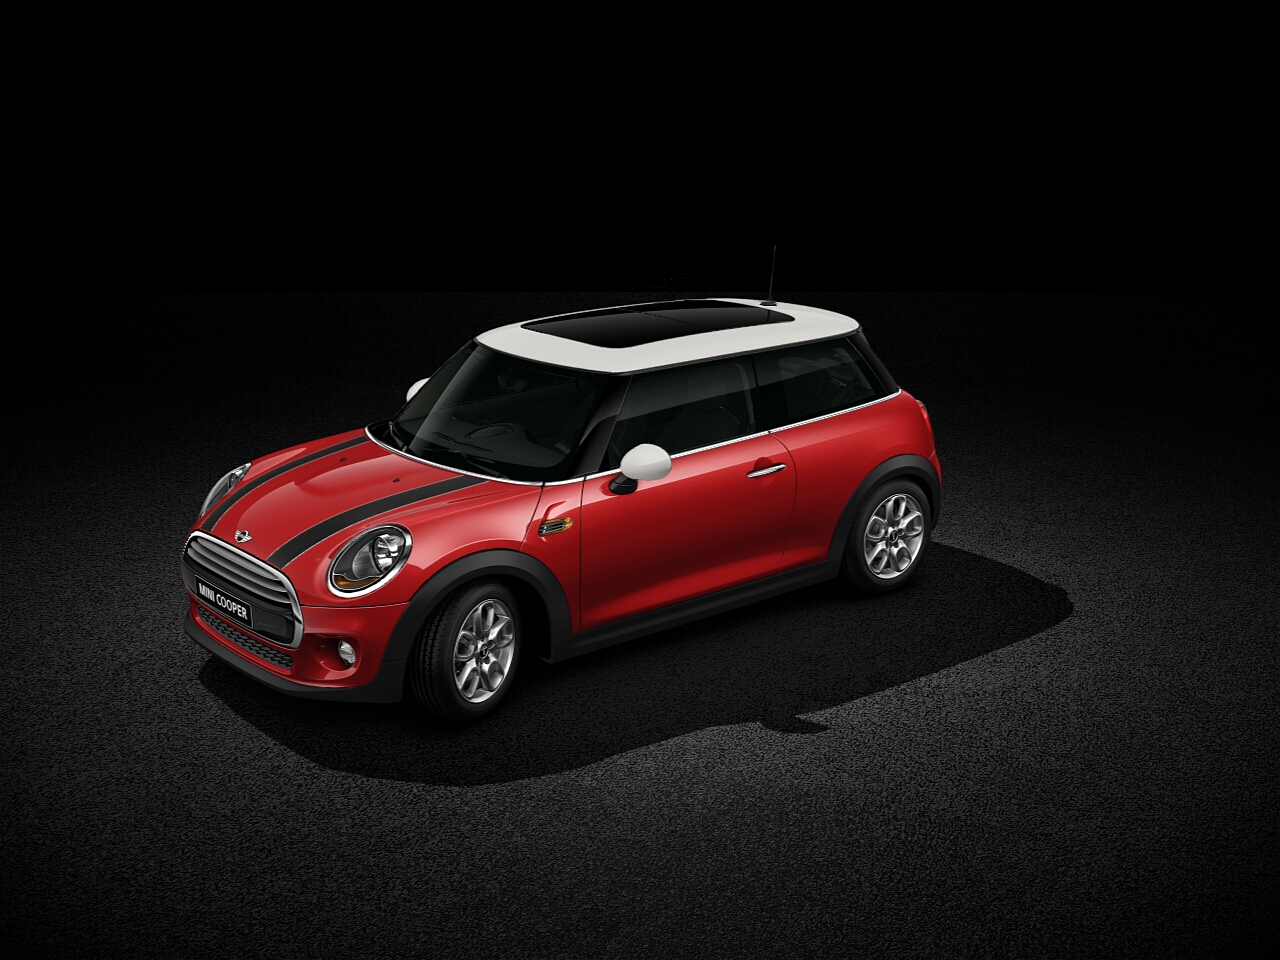 MINI_MINI COOPER 3 DOOR_Exterieur